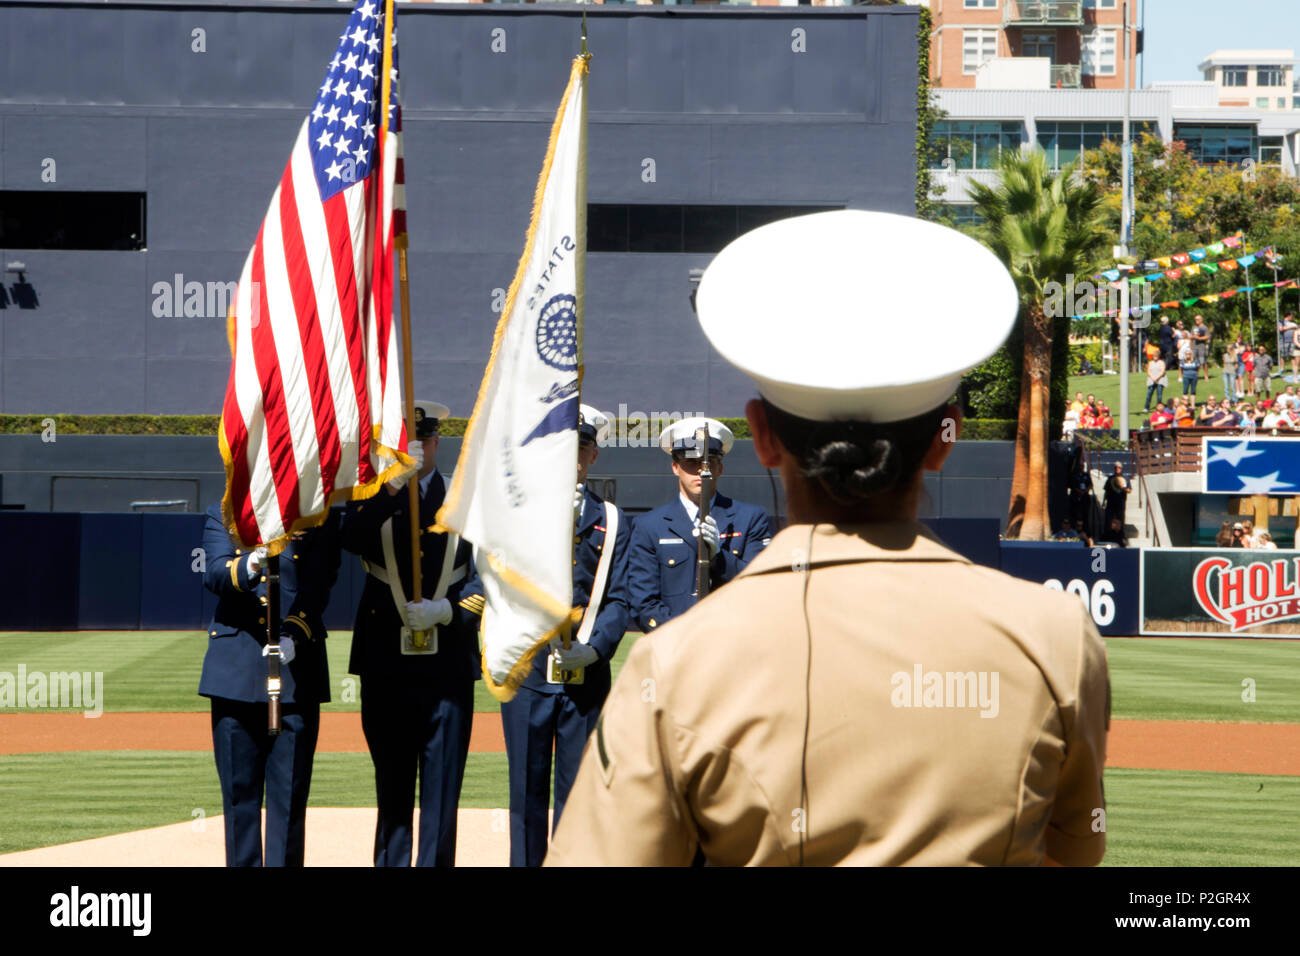 A color guard team from Coast Guard Sector San Diego presents the colors while Marine Private First Class Senora Lyons sings the National Anthem, Sept. 25, 2016, at the San Diego Padres vs. San Francisco Giants baseball game at Petco Park, San Diego, Calif. Every Sunday home game is military appreciation day at Petco Park, and servicemembers from the Navy, Coast Guard and Marine Corps perform the opening ceremony and during the 7th inning stretch. (U.S. Marine Corps photo by Lance Cpl. Adam Dublinske) - Stock Image